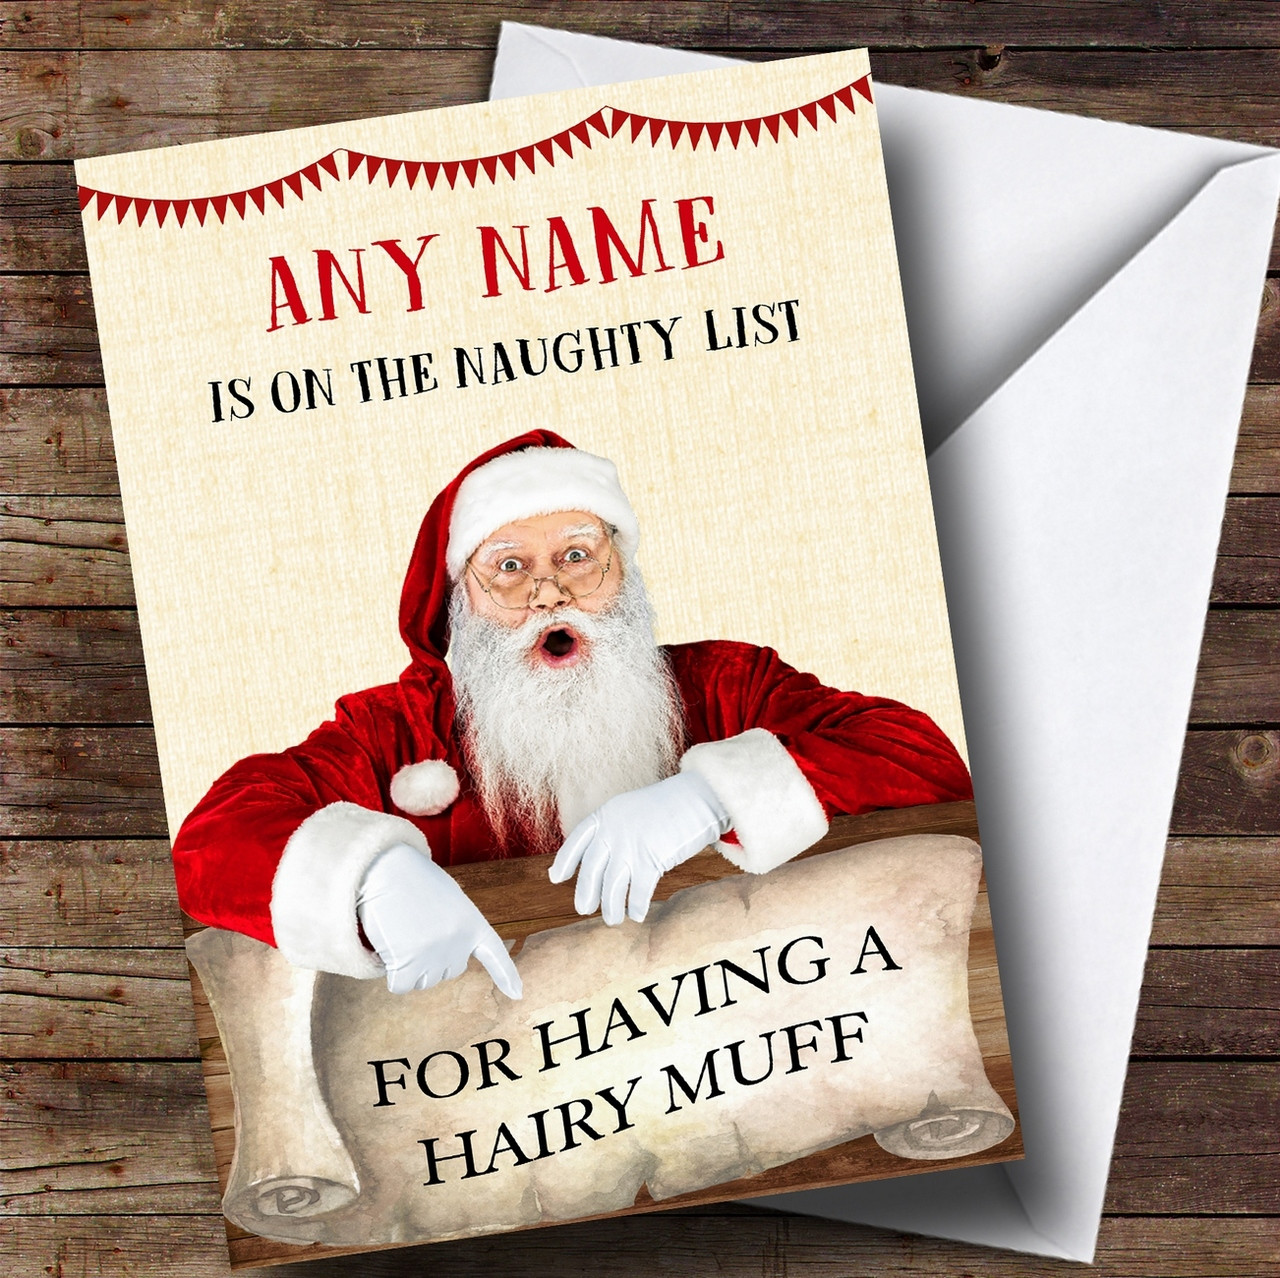 Funny Rude Offensive Naughty List Hairy Muff Personalised Christmas